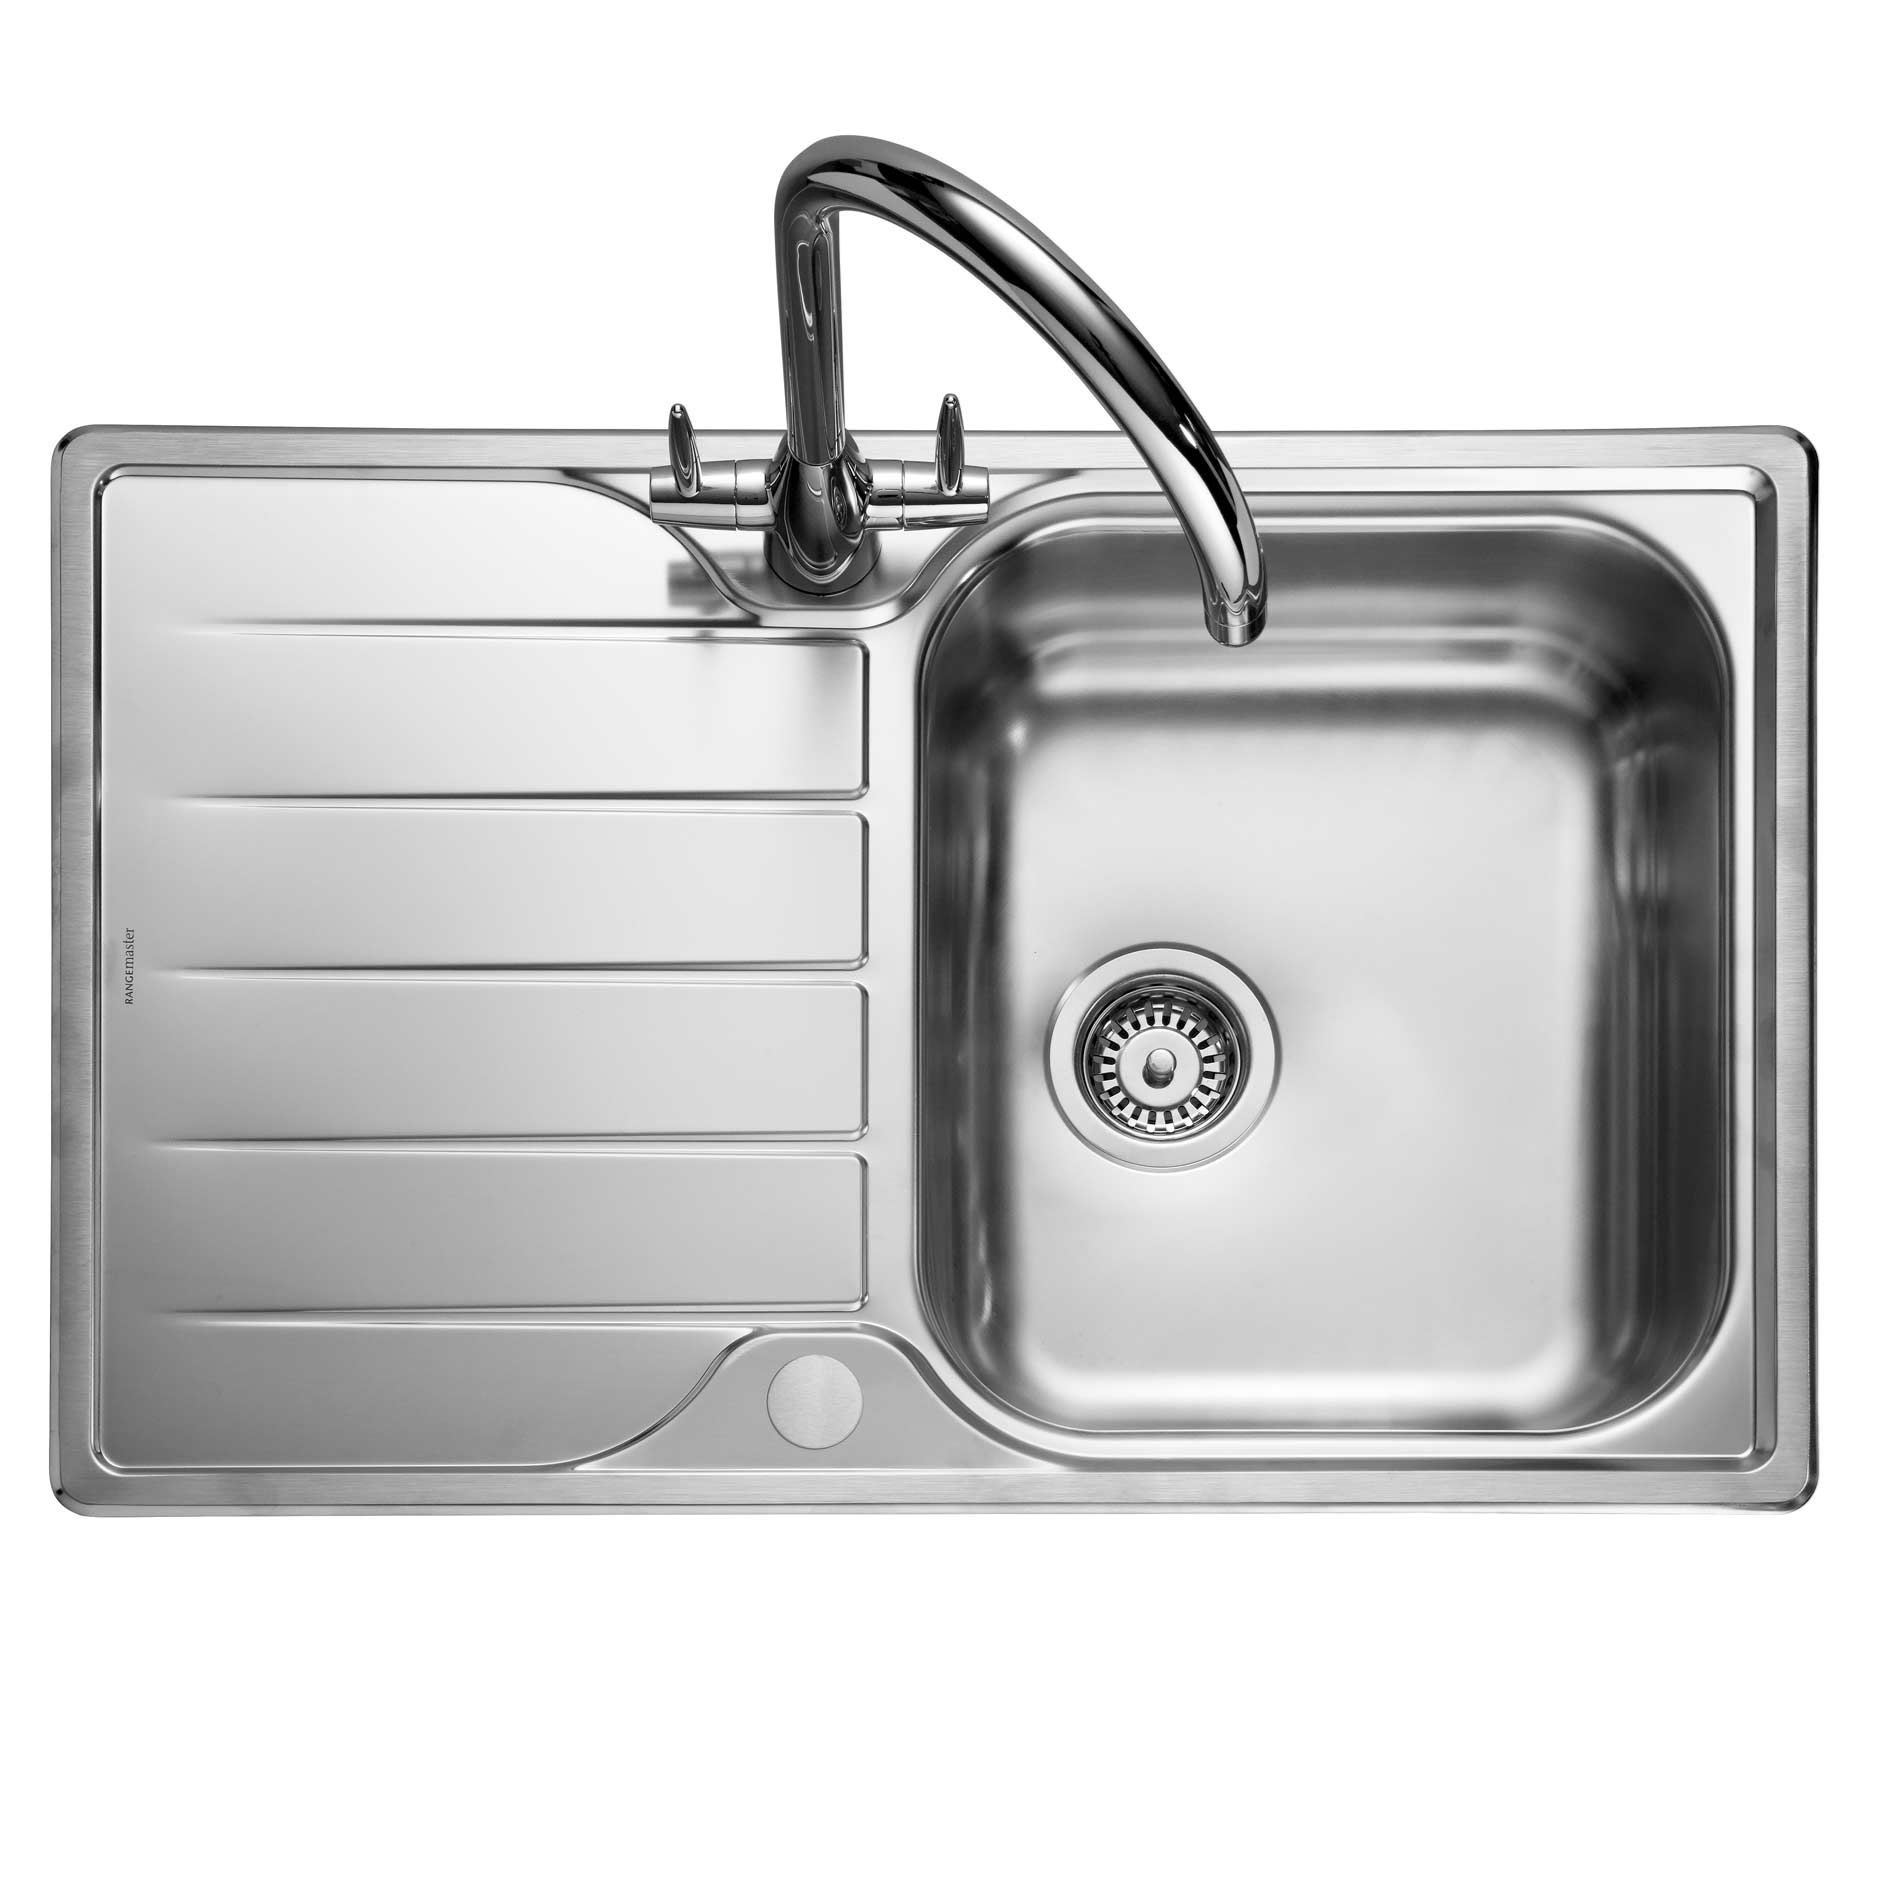 picture of michigan compact mg8001 stainless steel sink - Compact Kitchen Sink